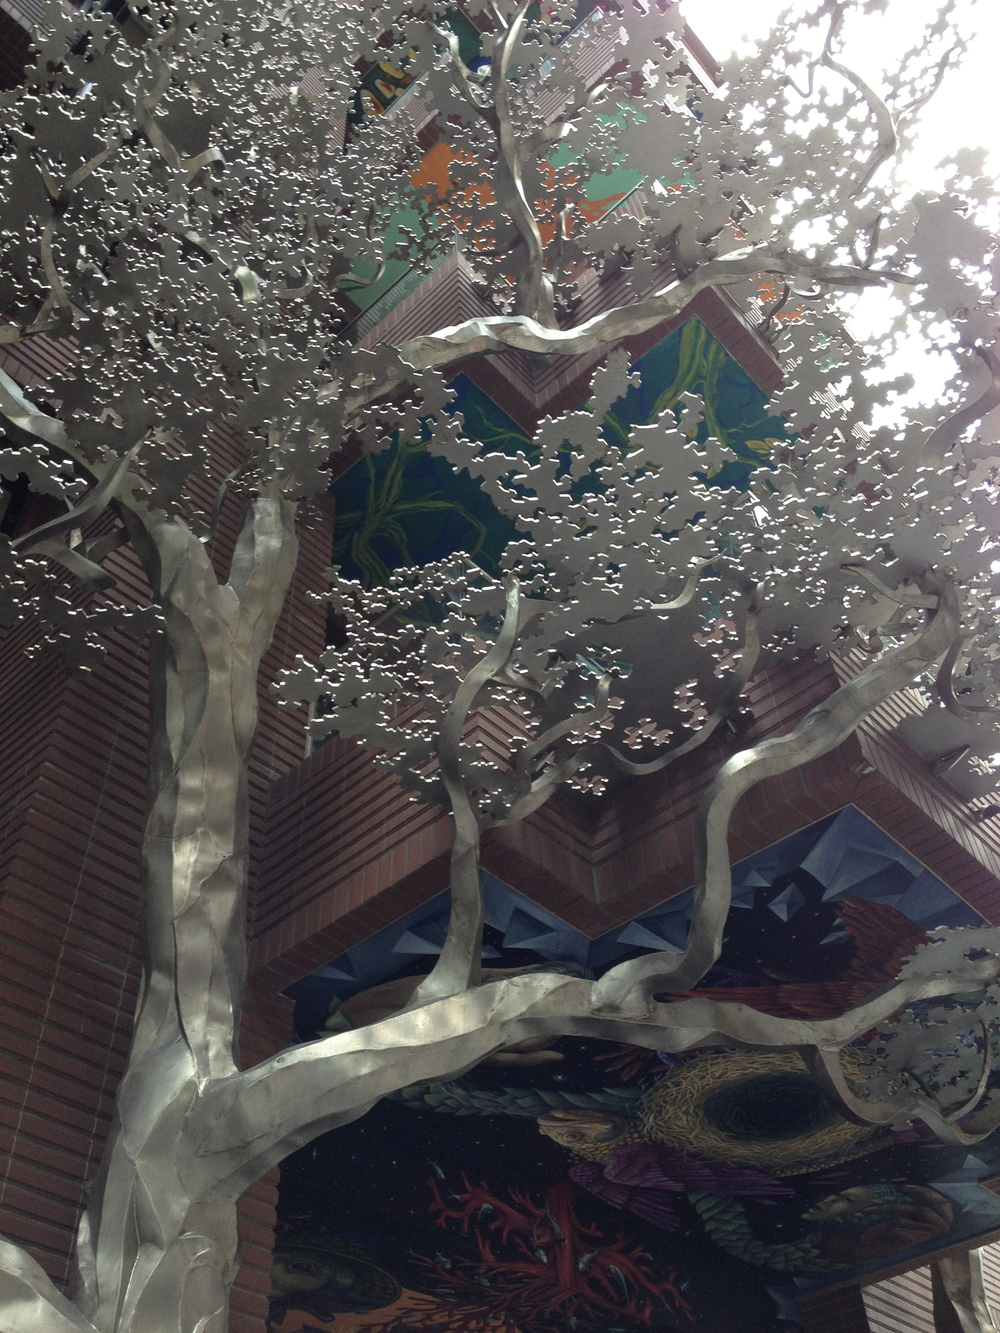 A metal tree next to the artists' building entrance.